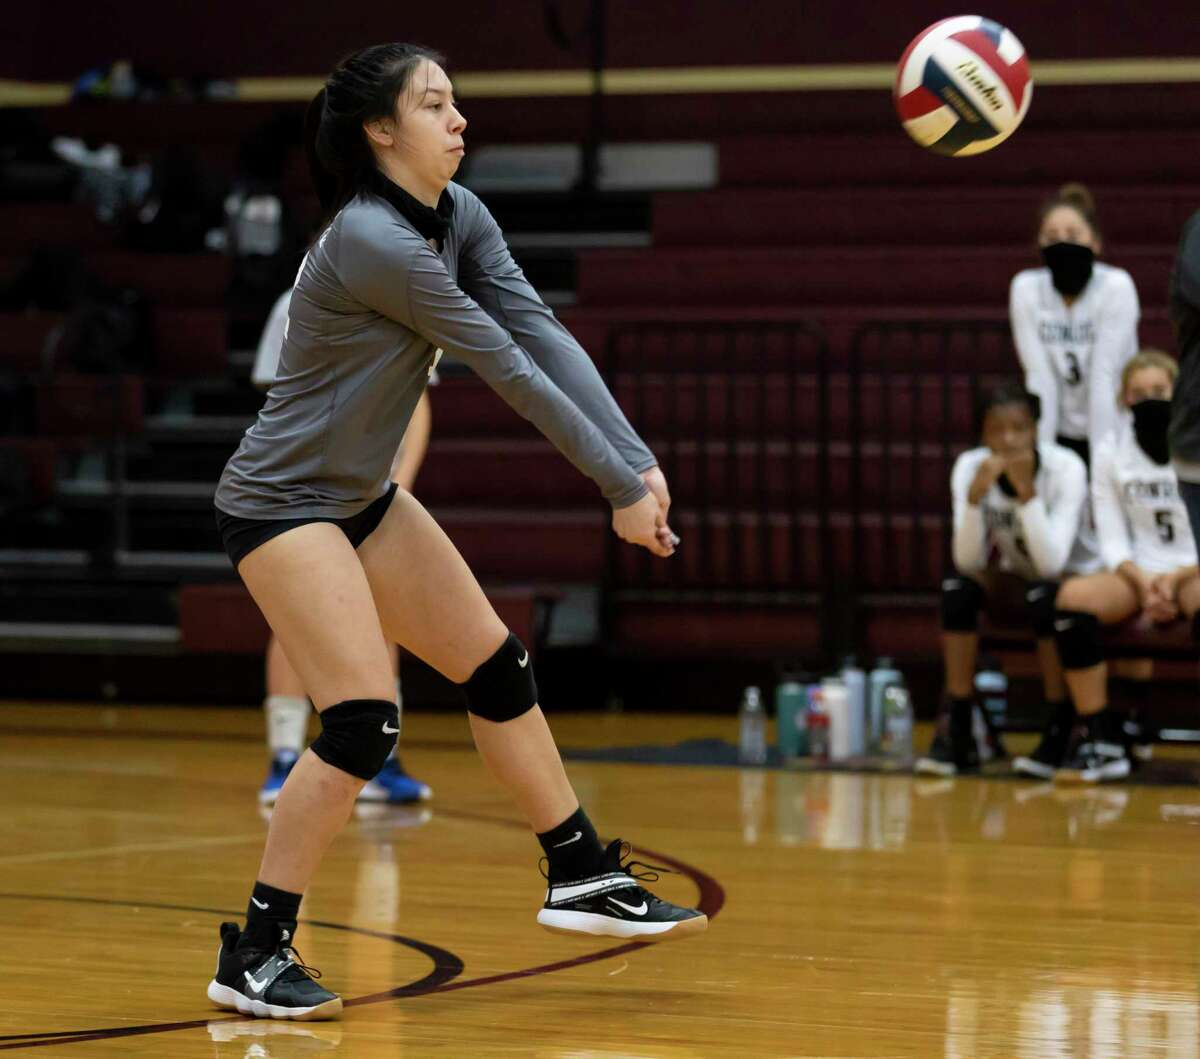 Conroe libero Saege Anzueto (12) returns a serve during the first set of a non-district volleyball match at Magnolia West High School, Friday, Sept. 18, 2020.